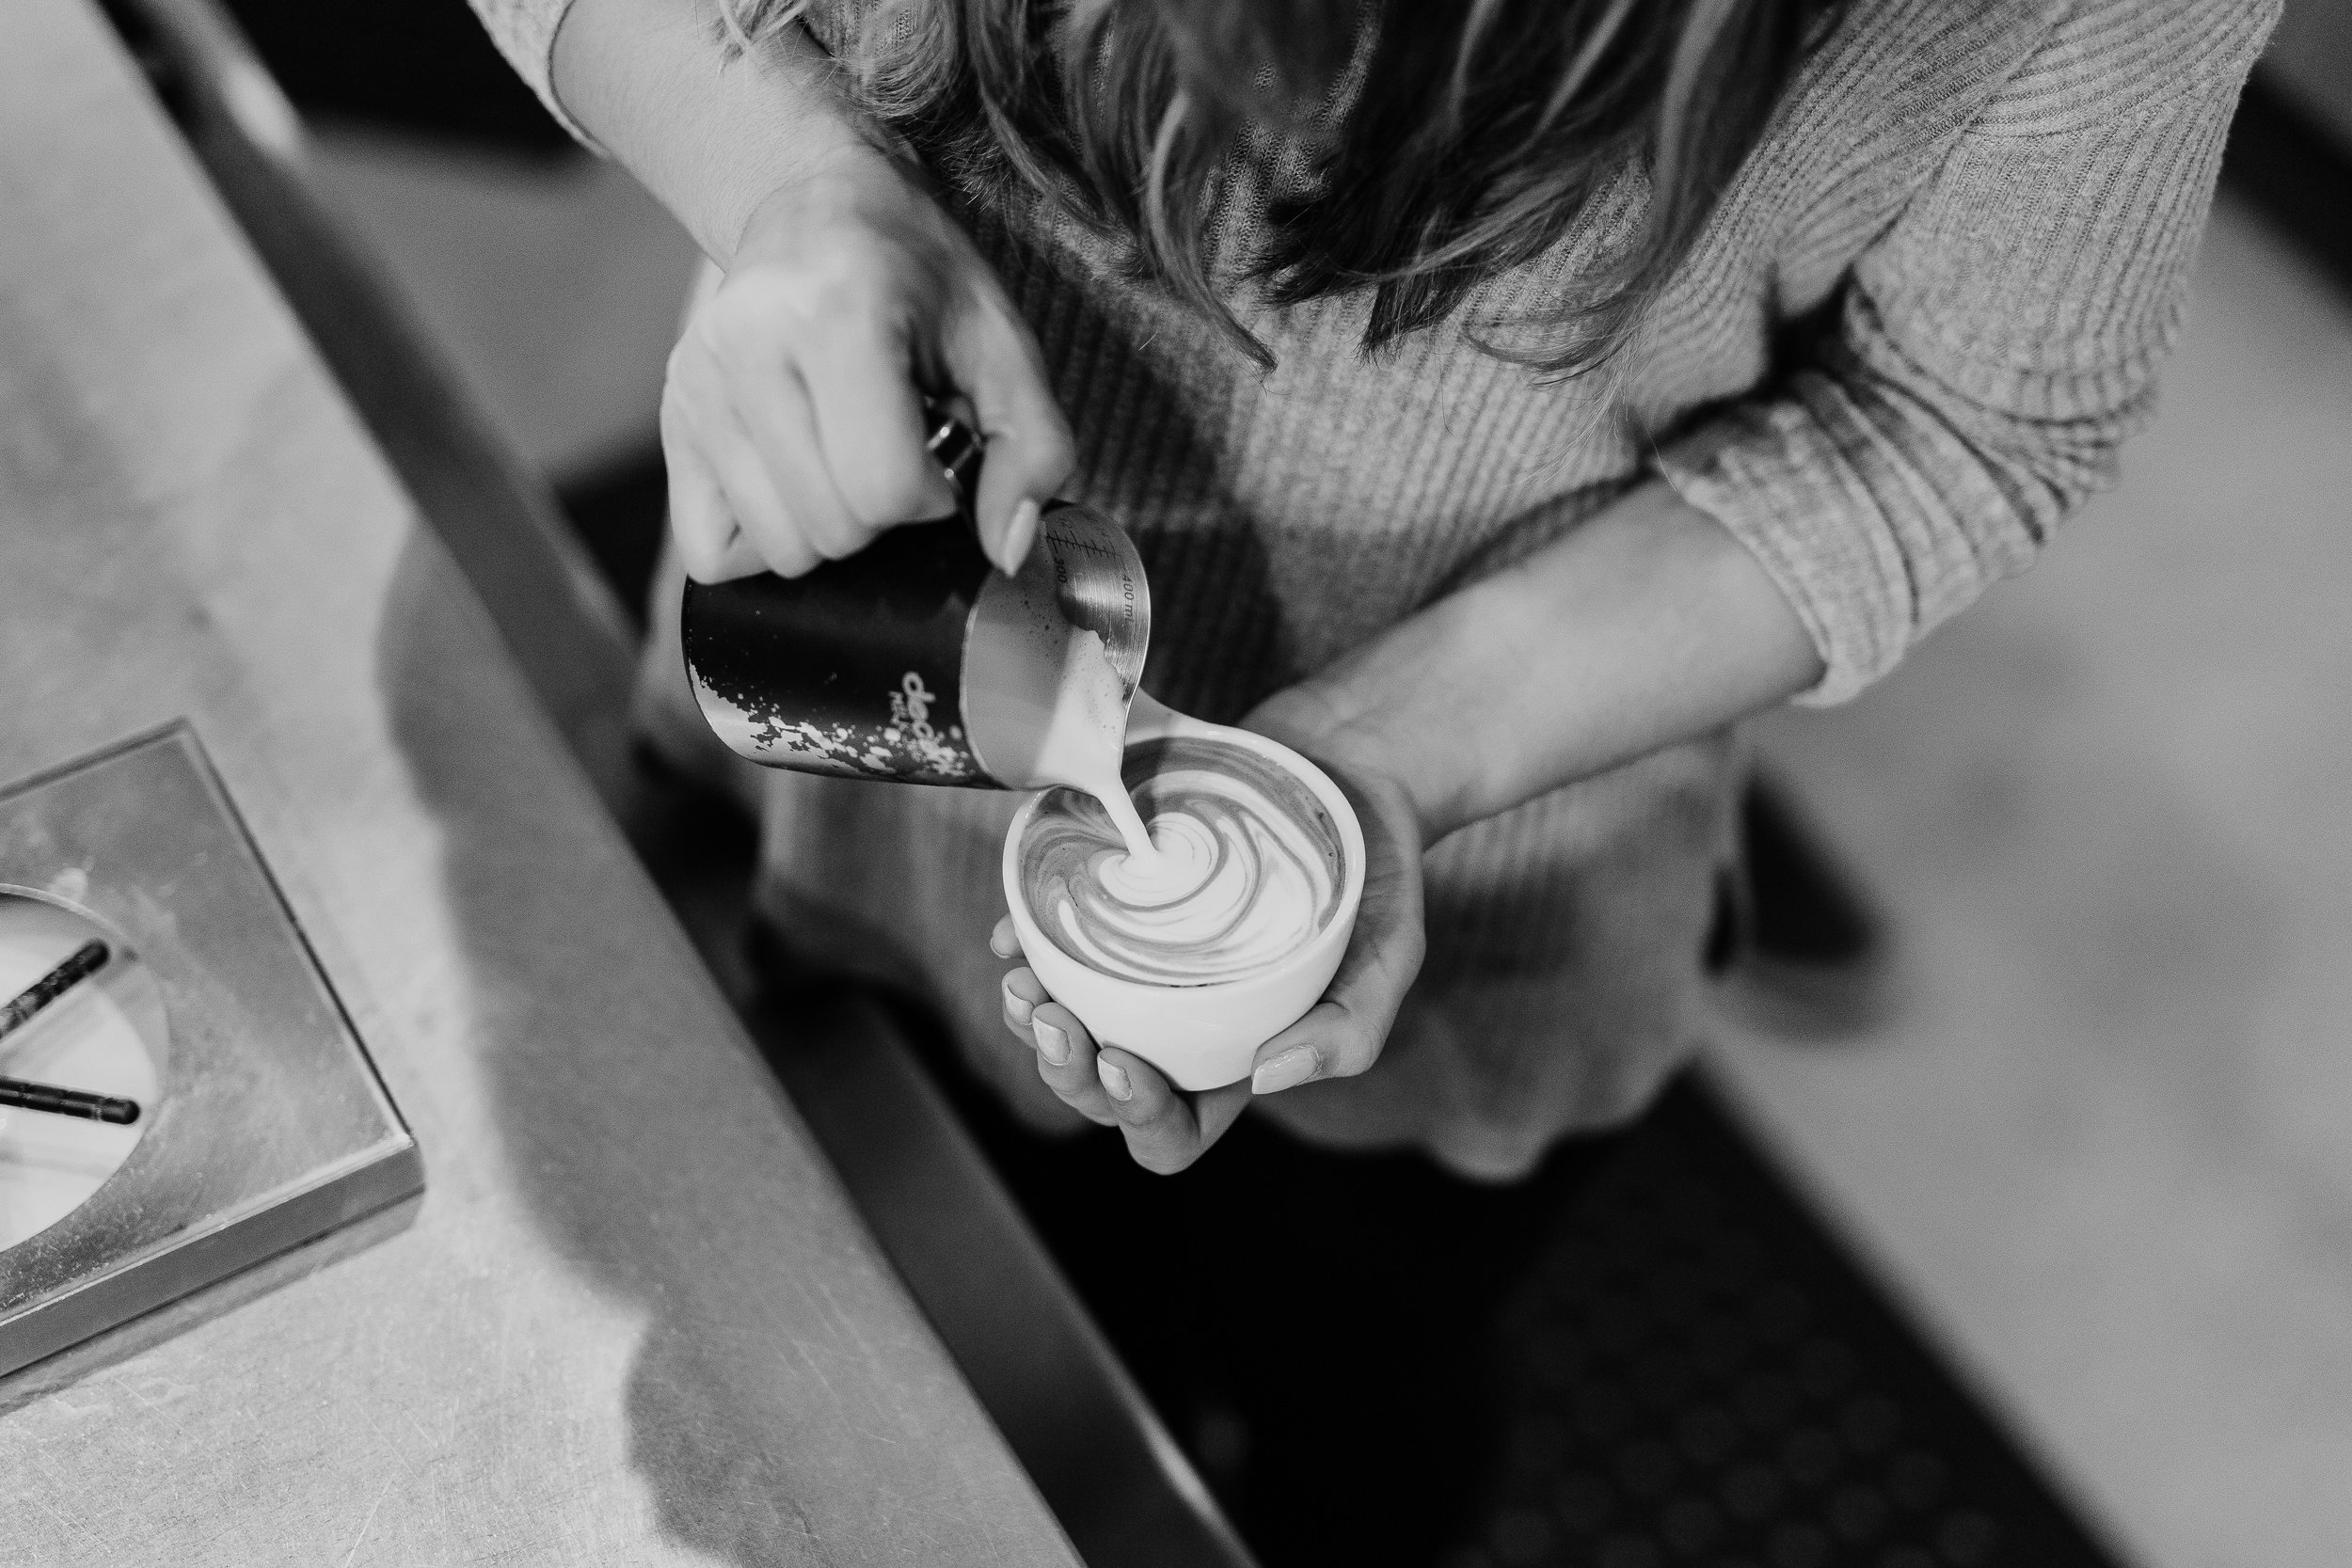 A barista pours a latte, seen from above